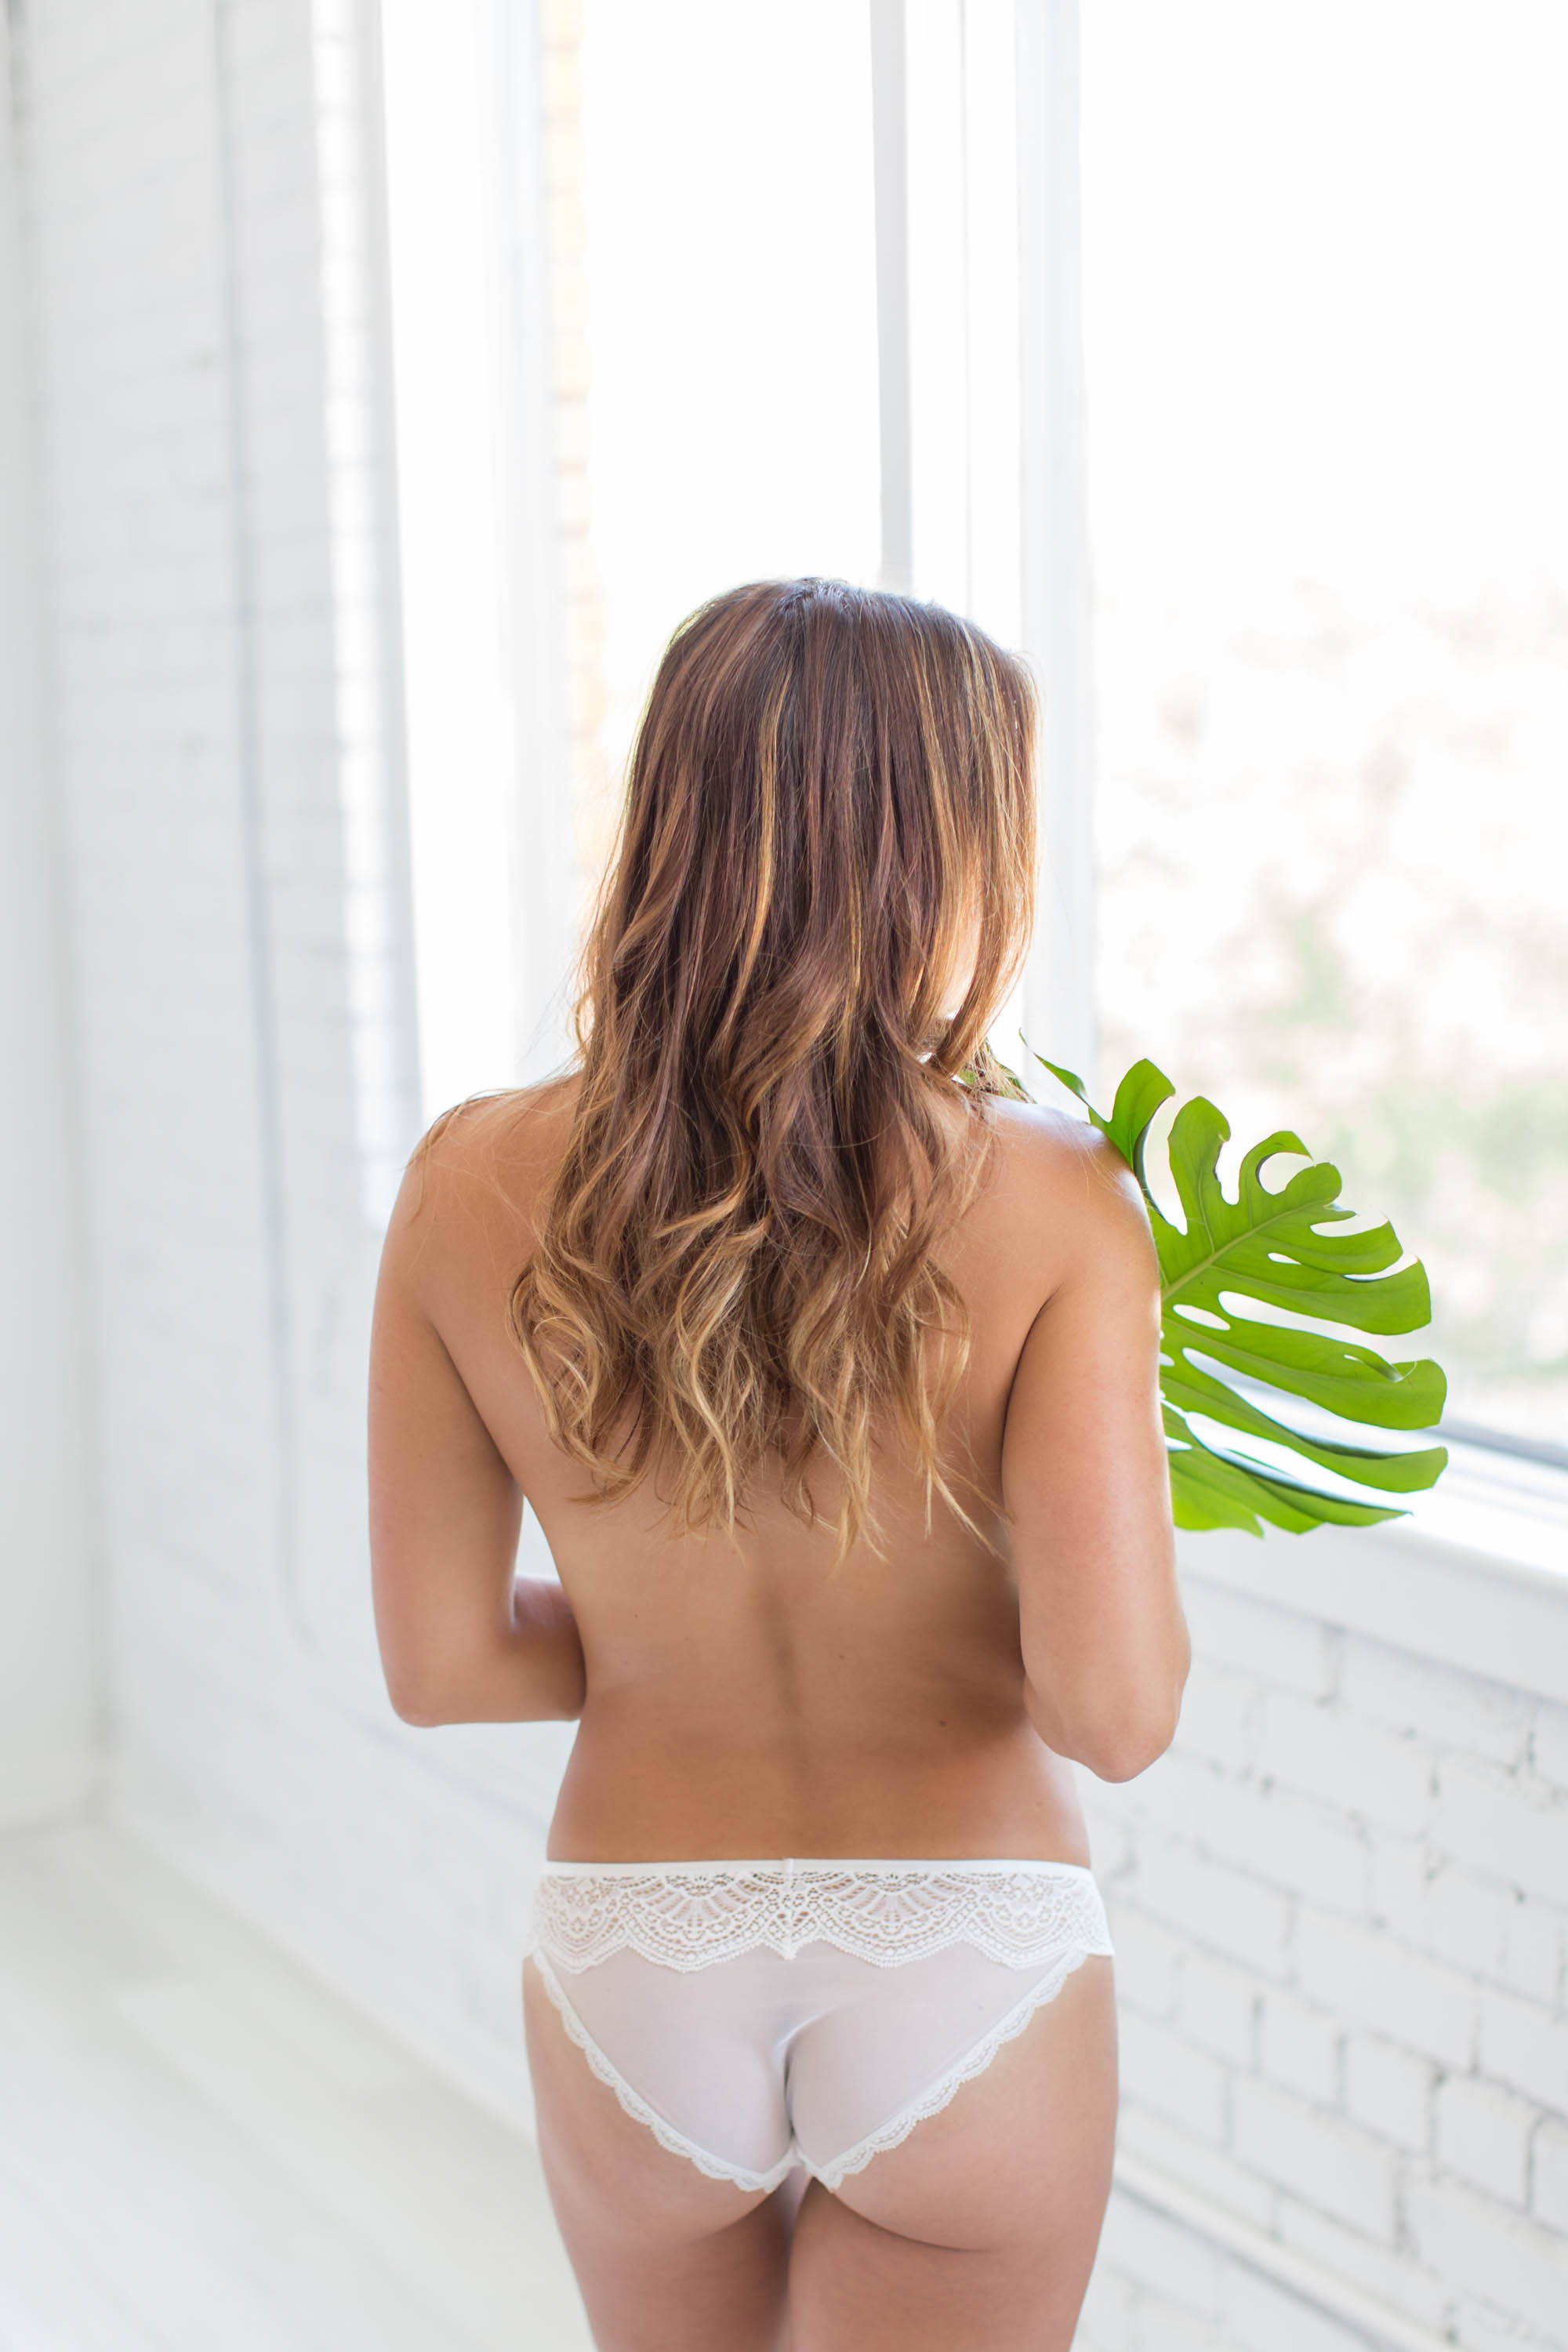 https://www.sheamayberry.com/wp-content/uploads/2019/05/21-3048-post/Shea-Mayberry_photography-Dallas-Boudoir-0534.jpg